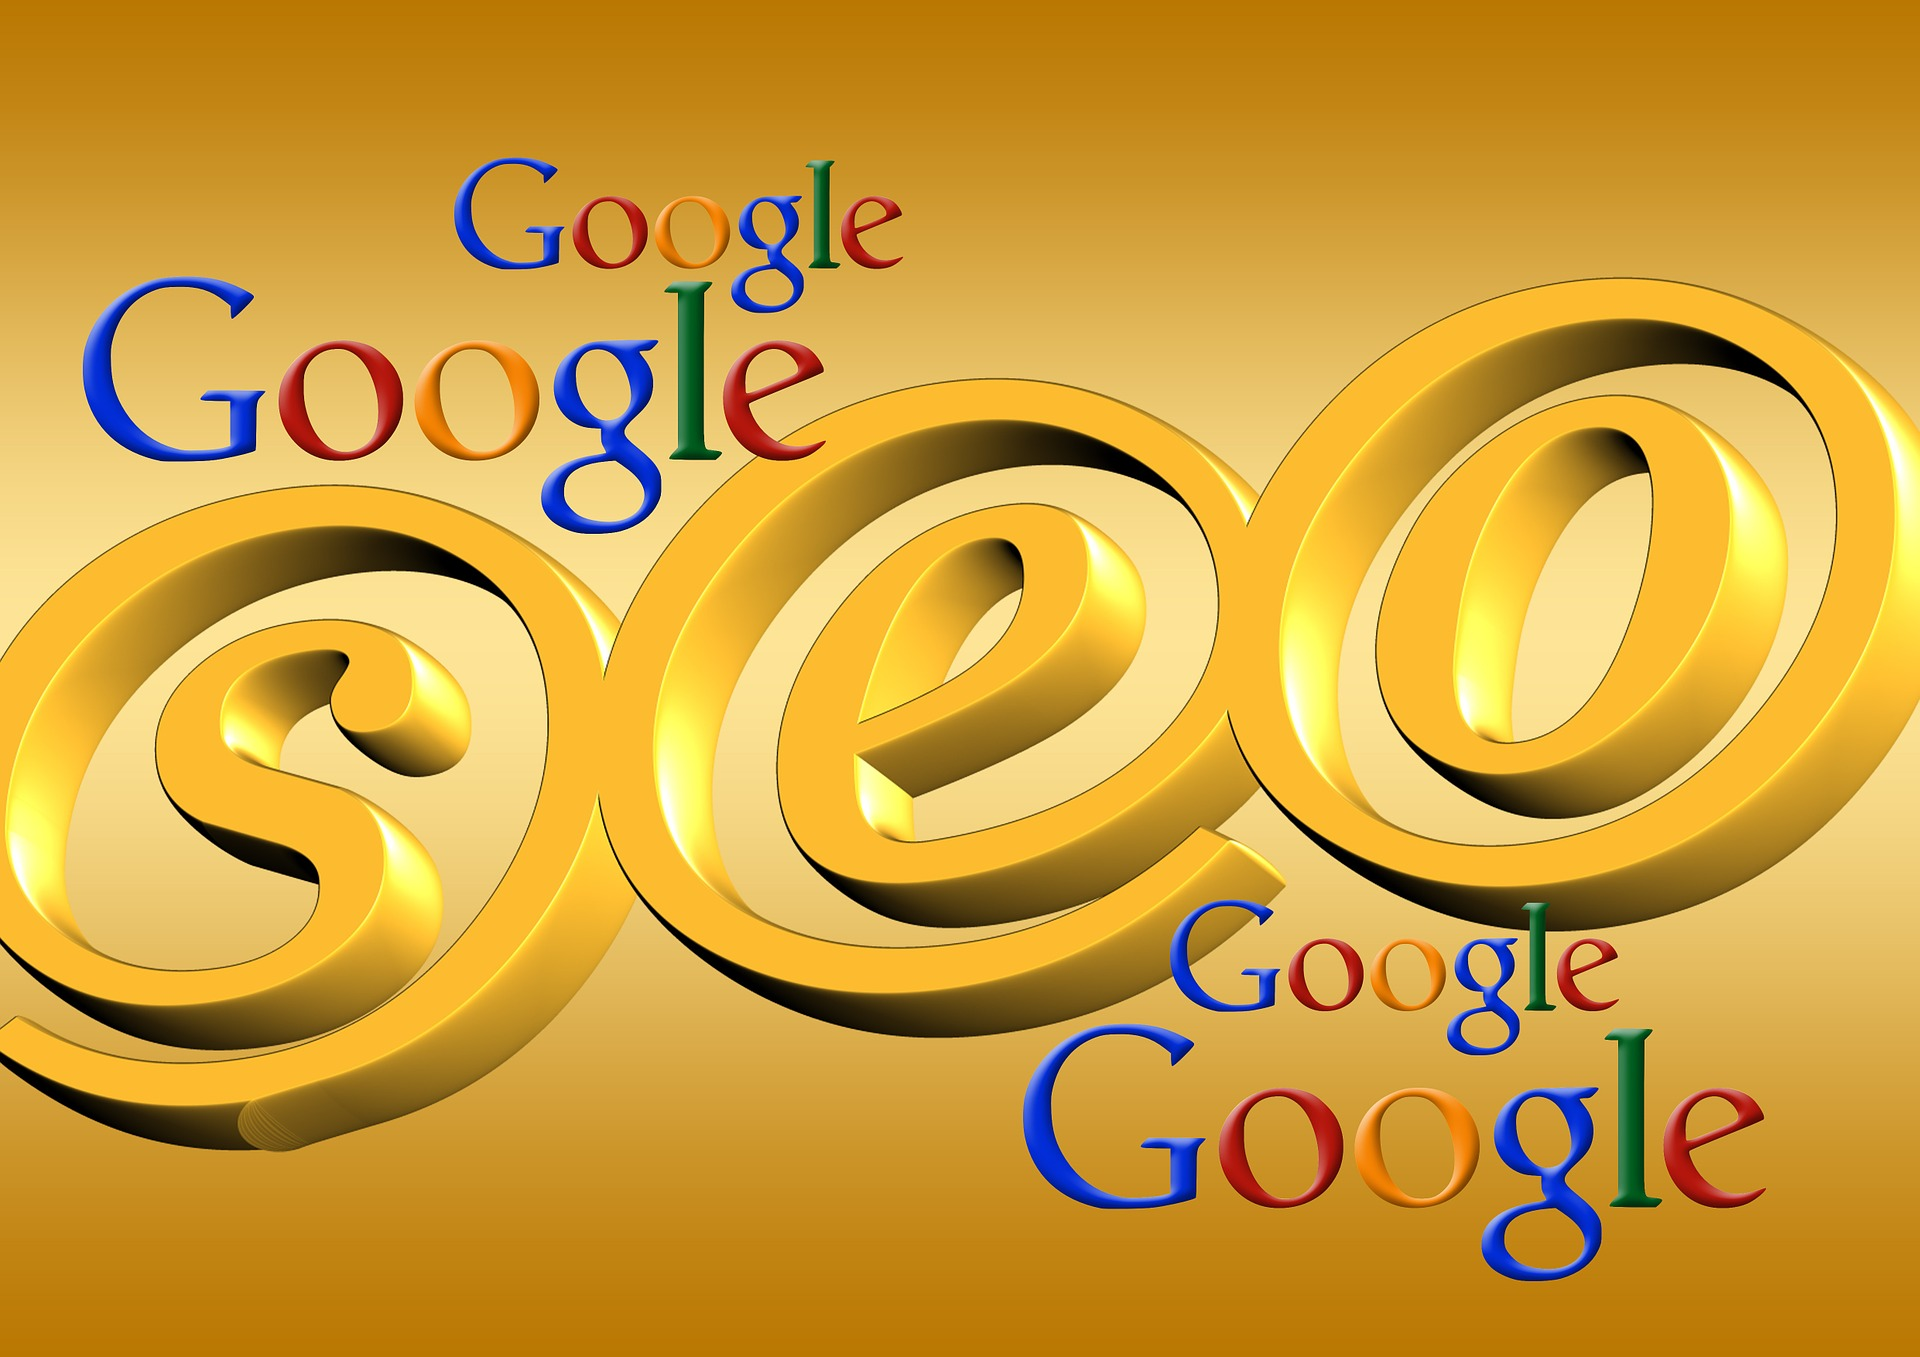 150,000 BACKLINKS + INDEXING these backlinks at Promotional Price